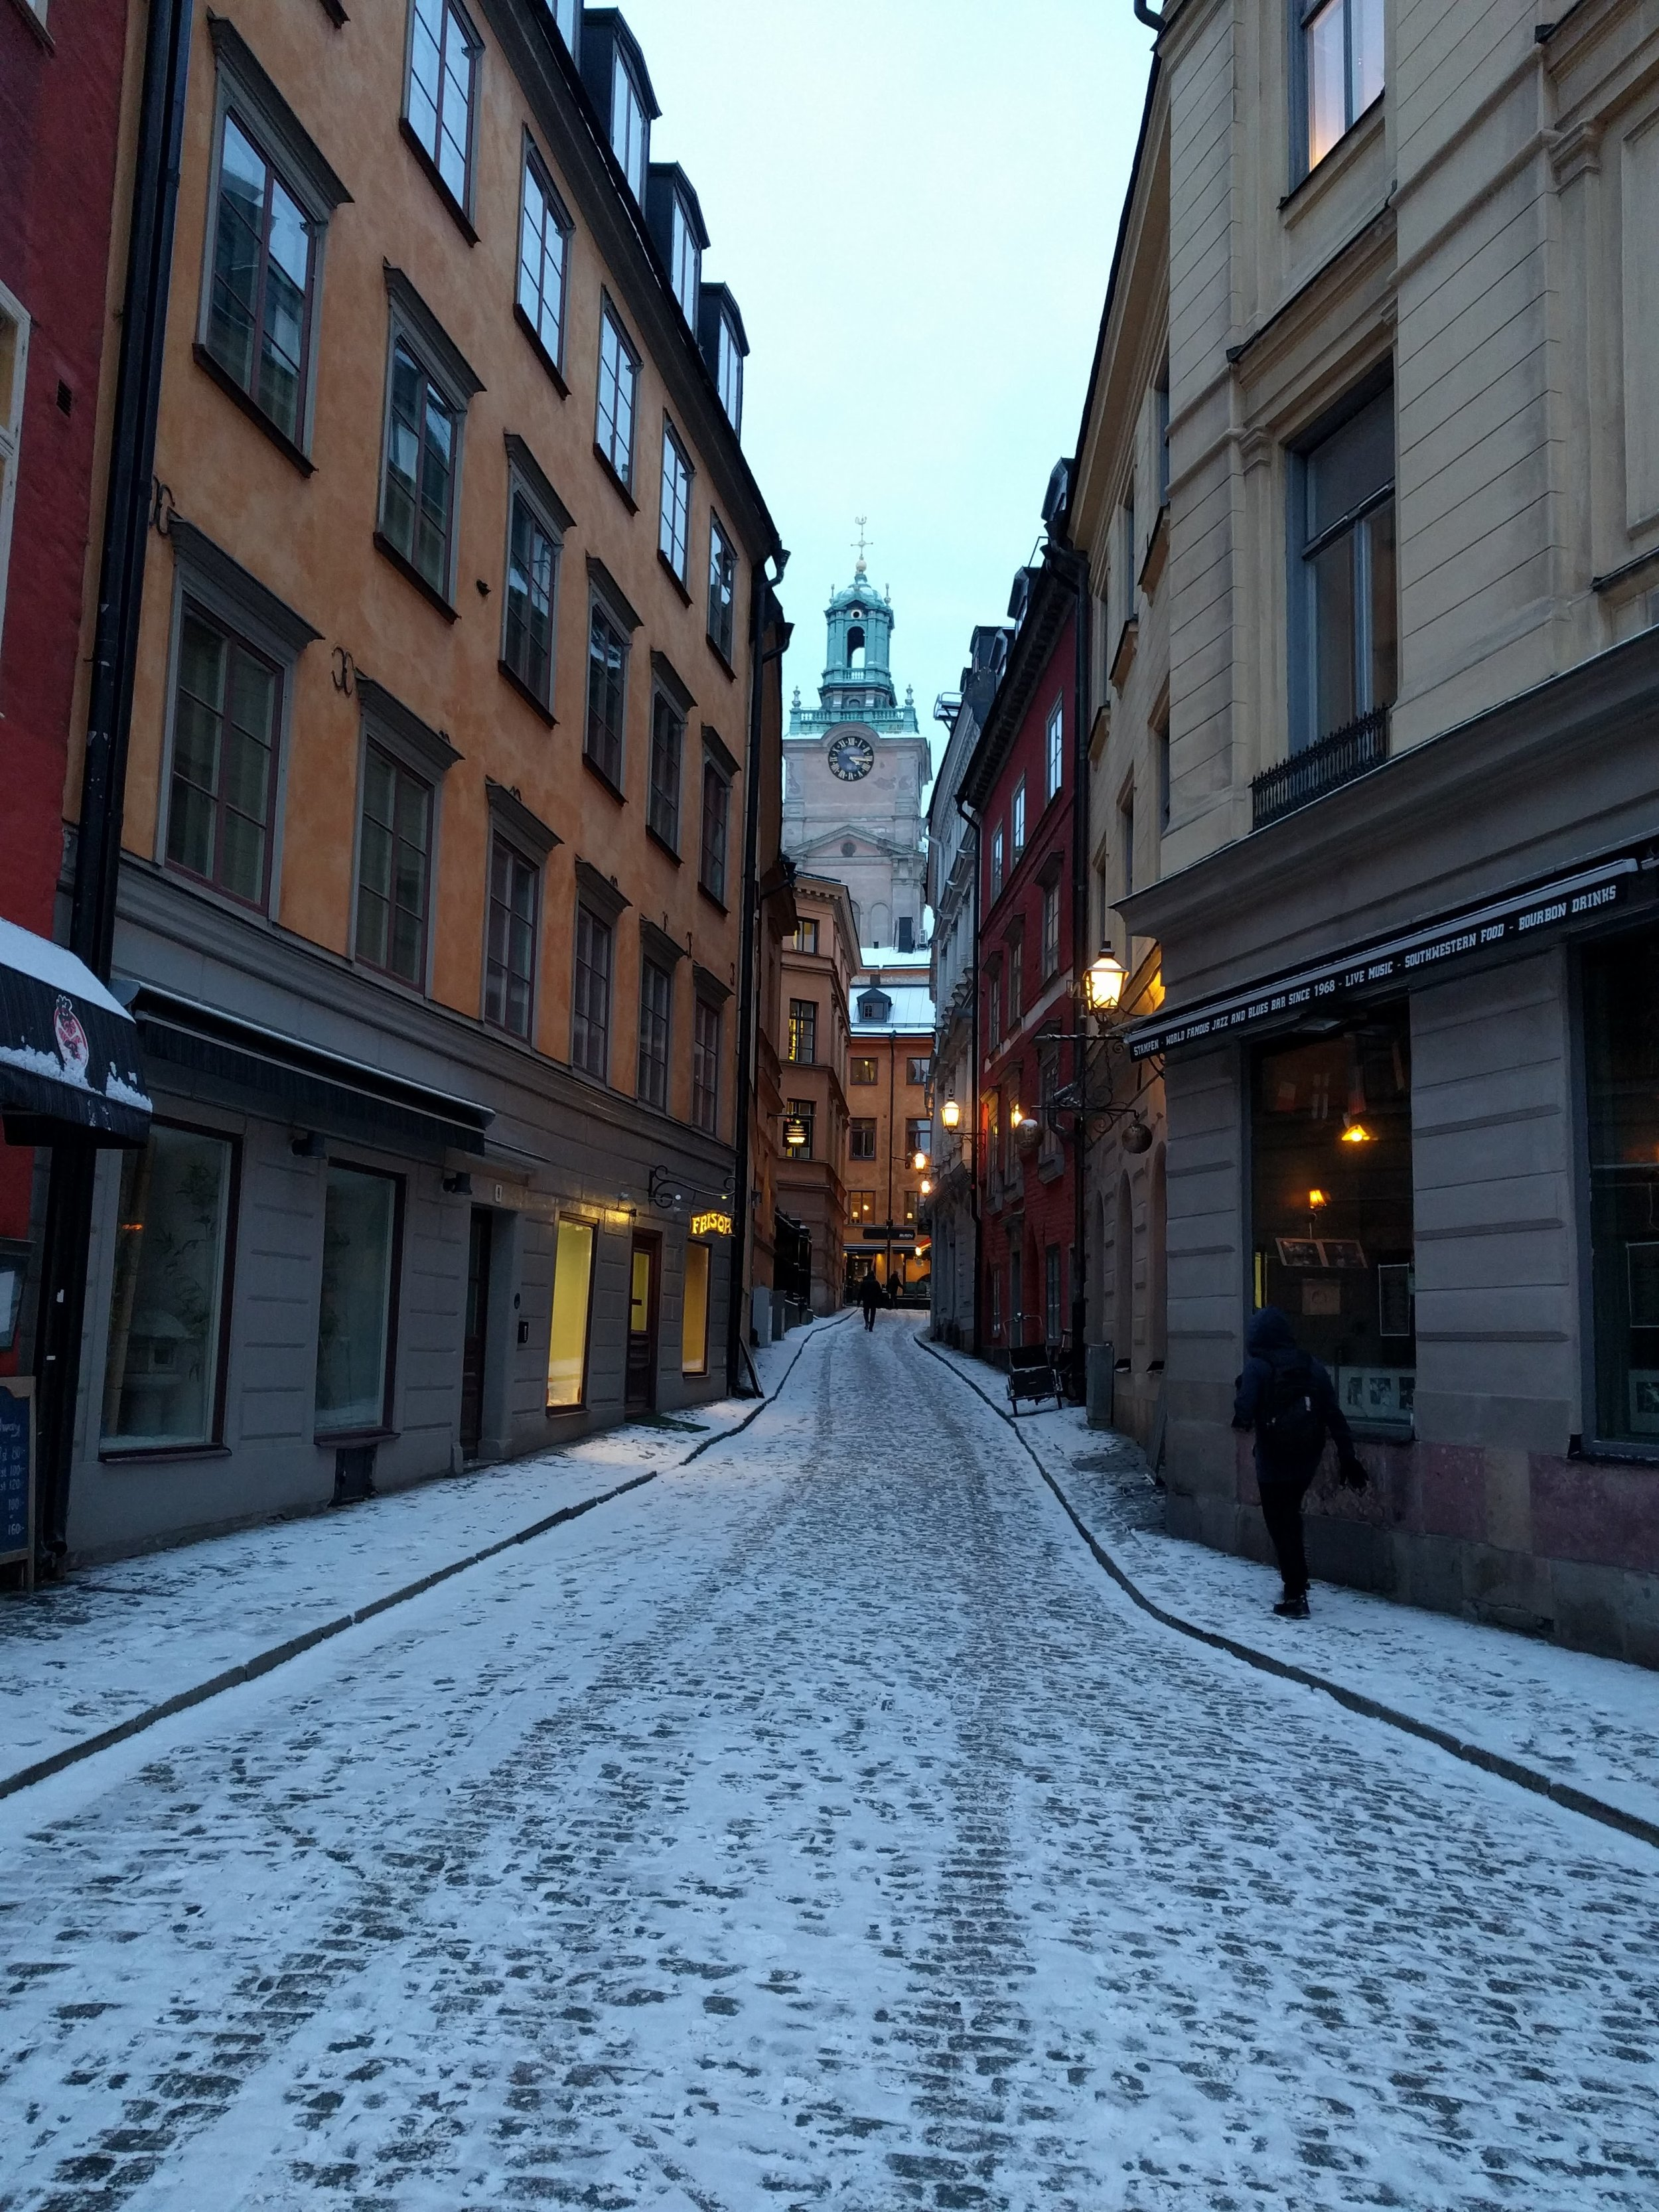 The picturesque architecture we found in the old town dates back to the 13th century and was made even more appealing by a dusting of snow covering the city. -